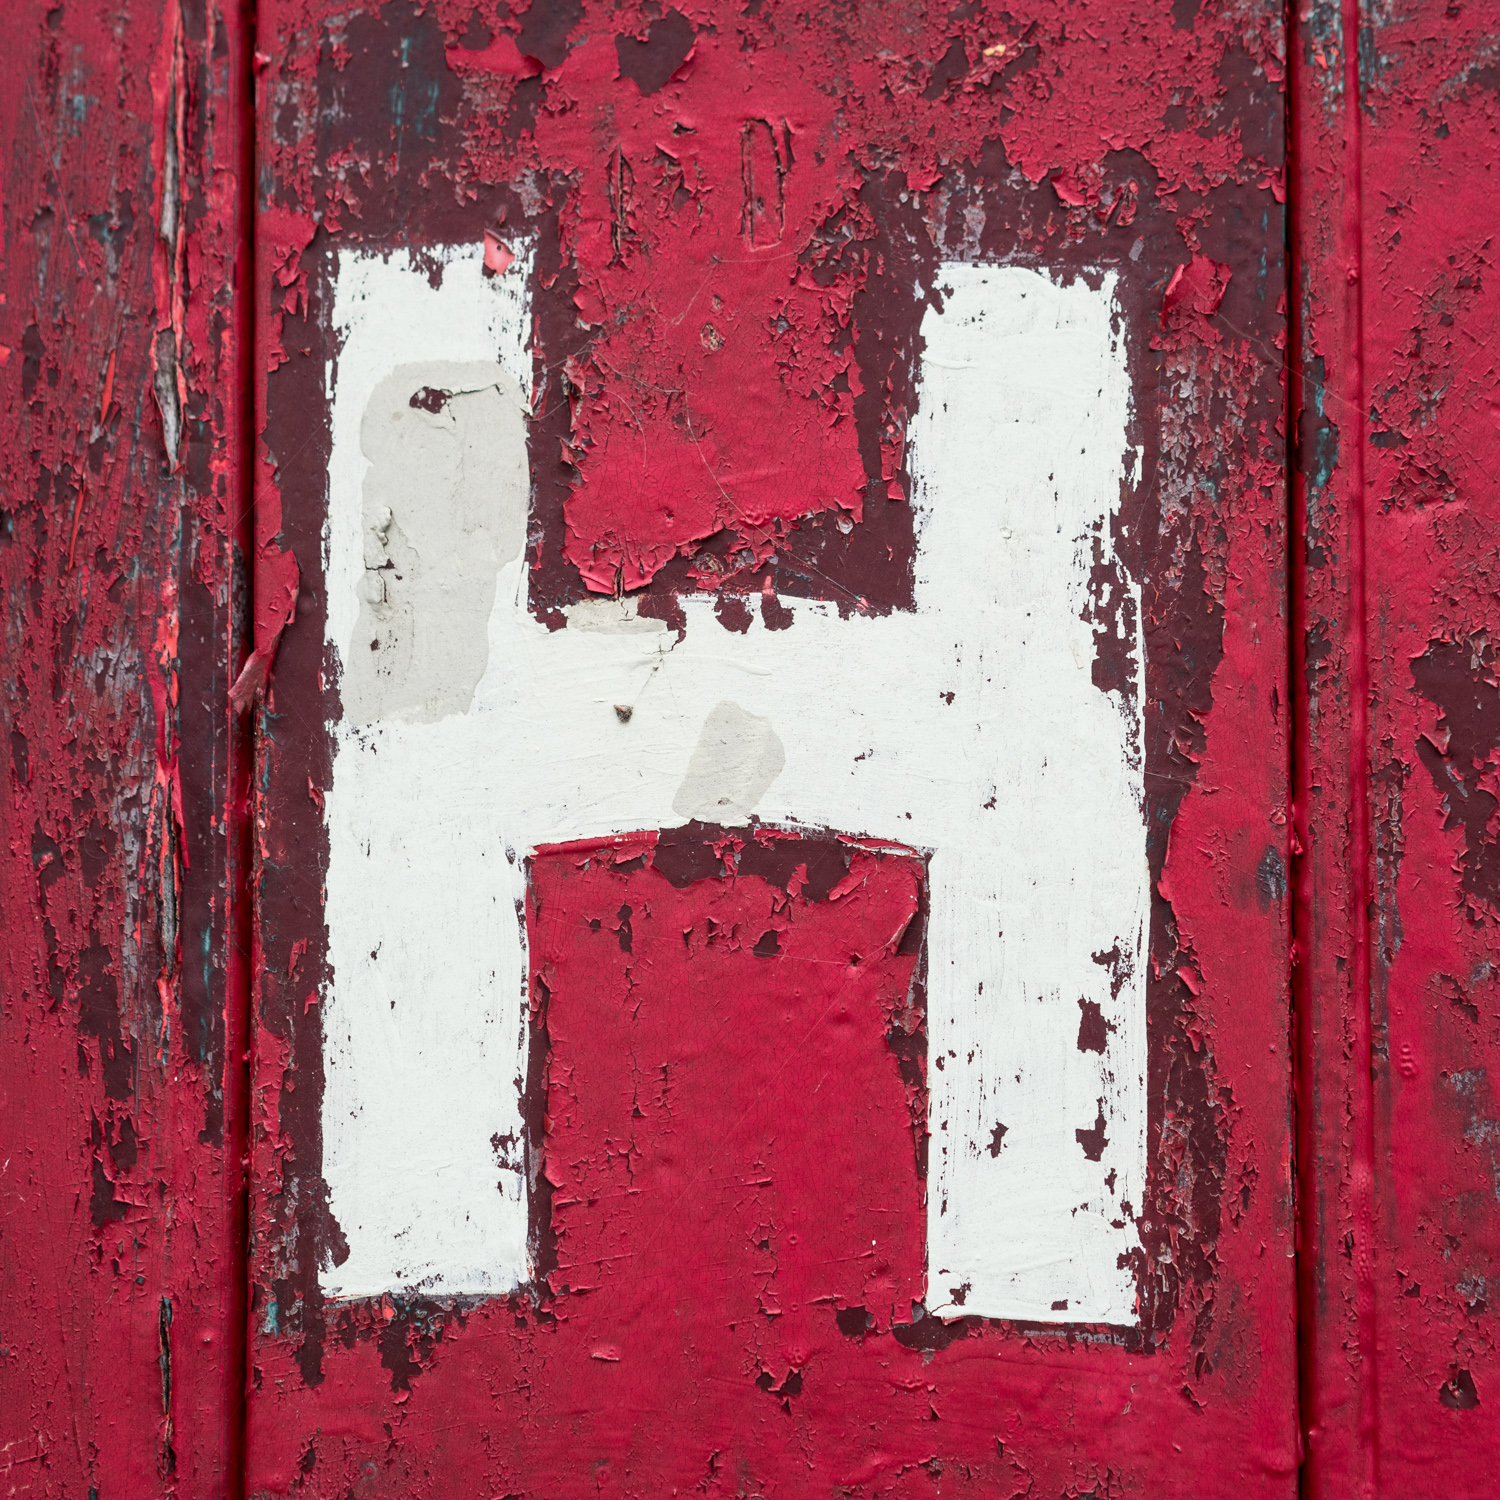 How could I resist wonderful textures like these on the door of the old fire house?